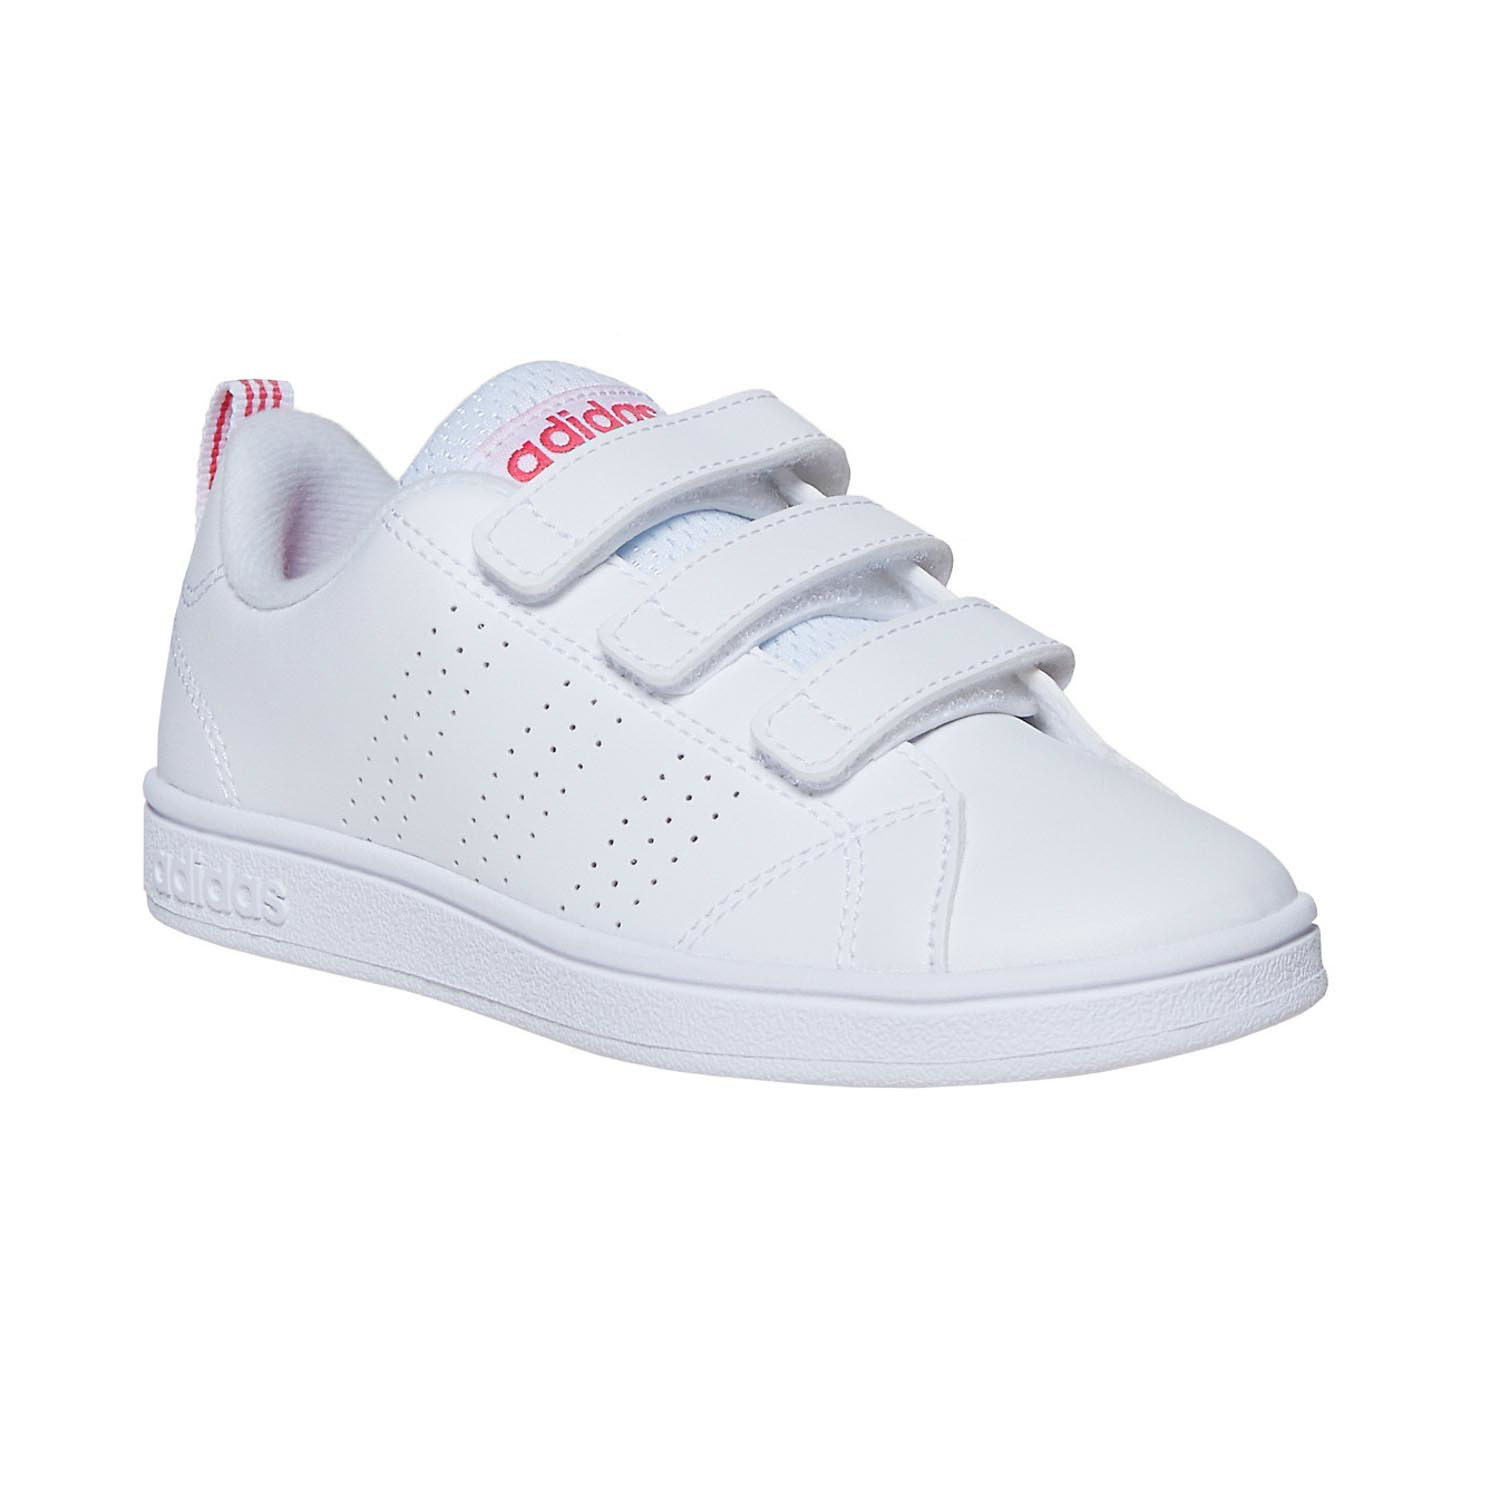 Adidas Girls' sneakers with Velcro